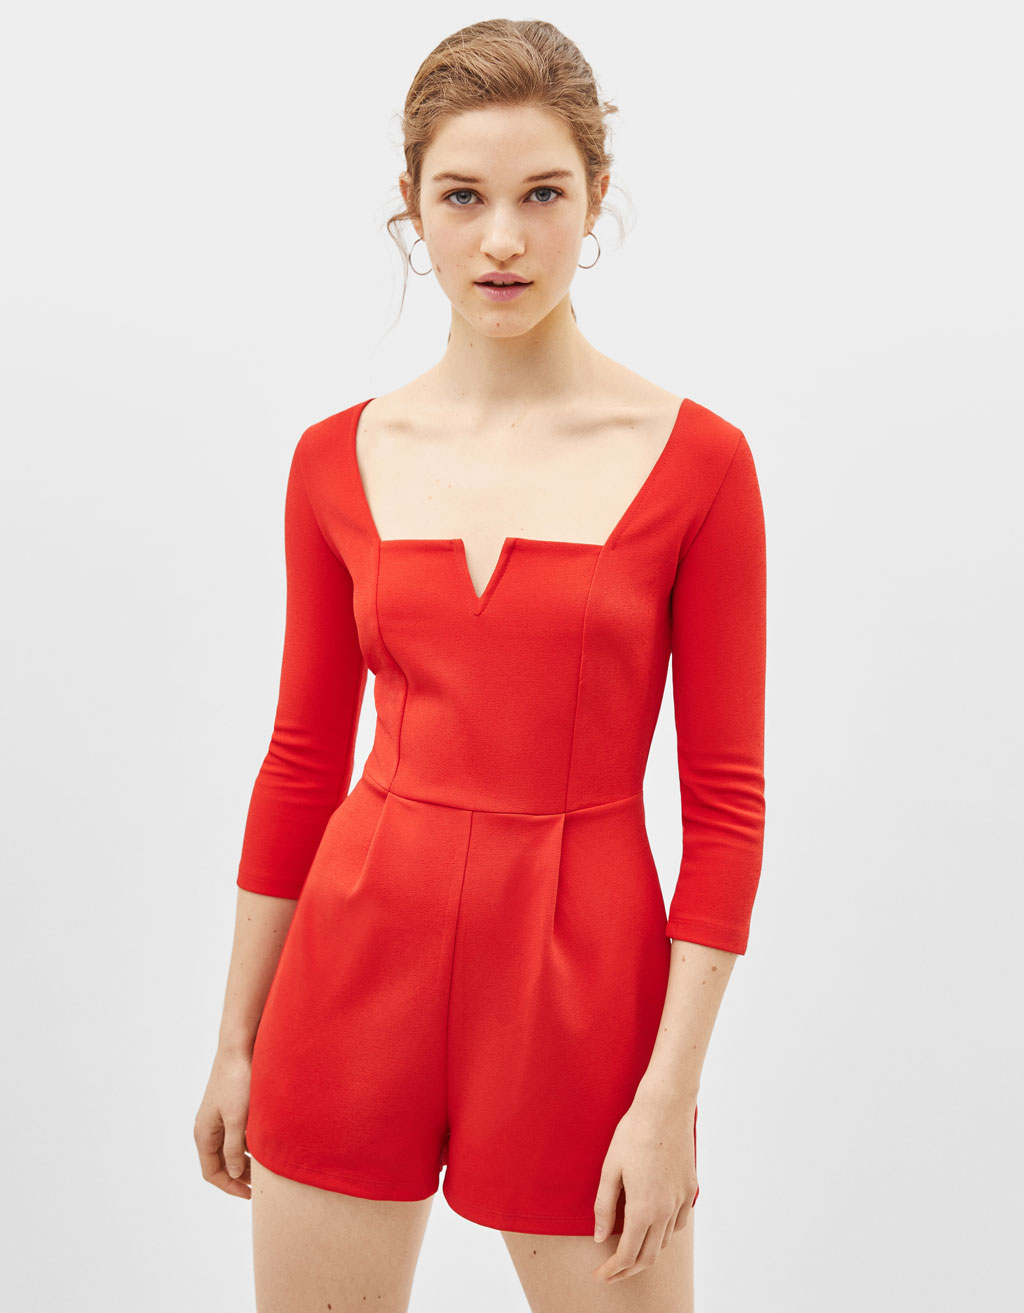 Playsuit with notched square neckline